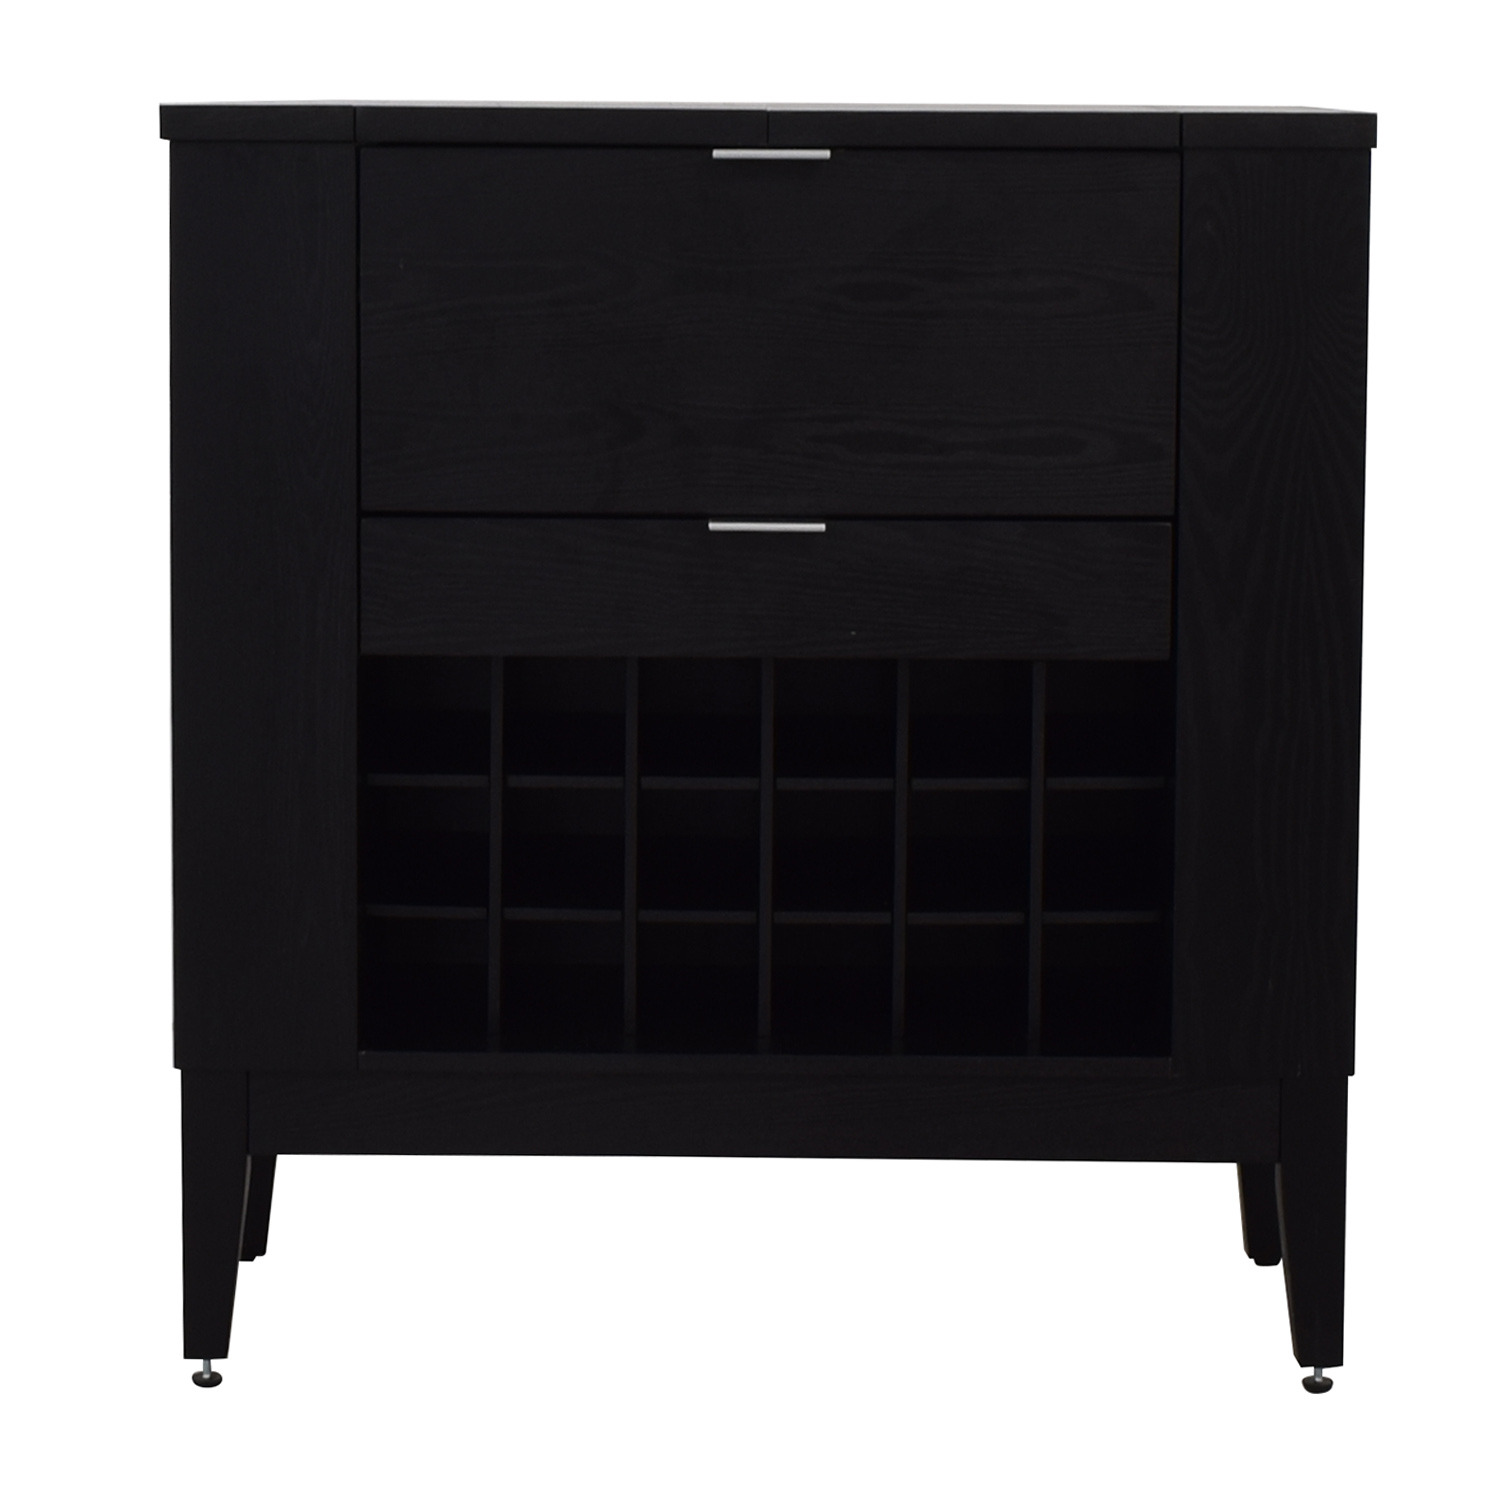 Crate & Barrel Crate & Barrel Parker Spirits Cabinet Utility Tables